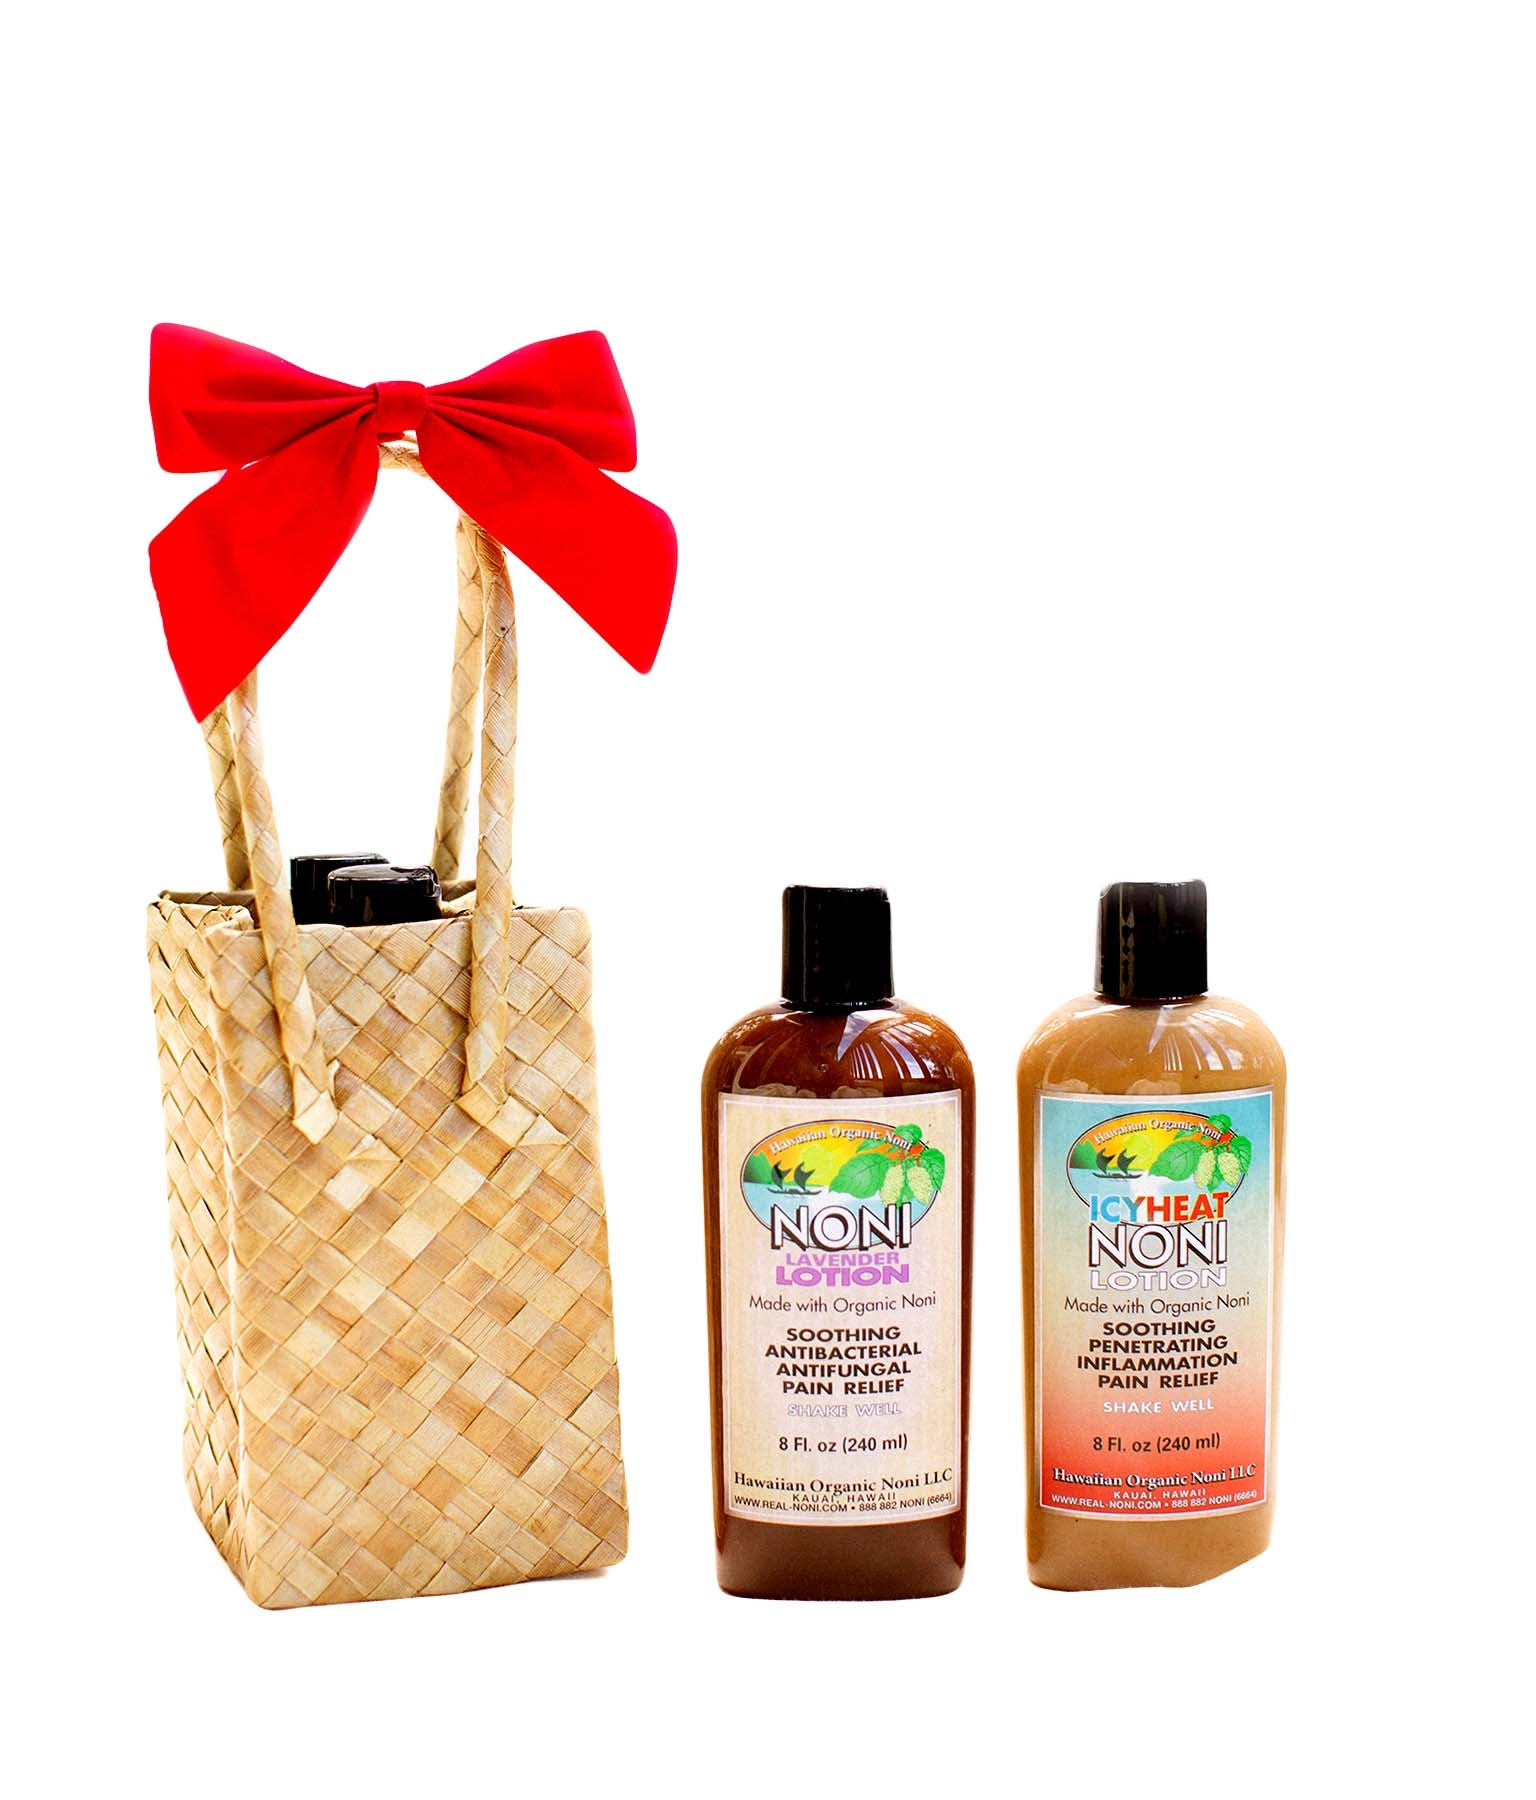 Give the Gift of Noni: Holiday Sharing from Hawaiian Organic Noni